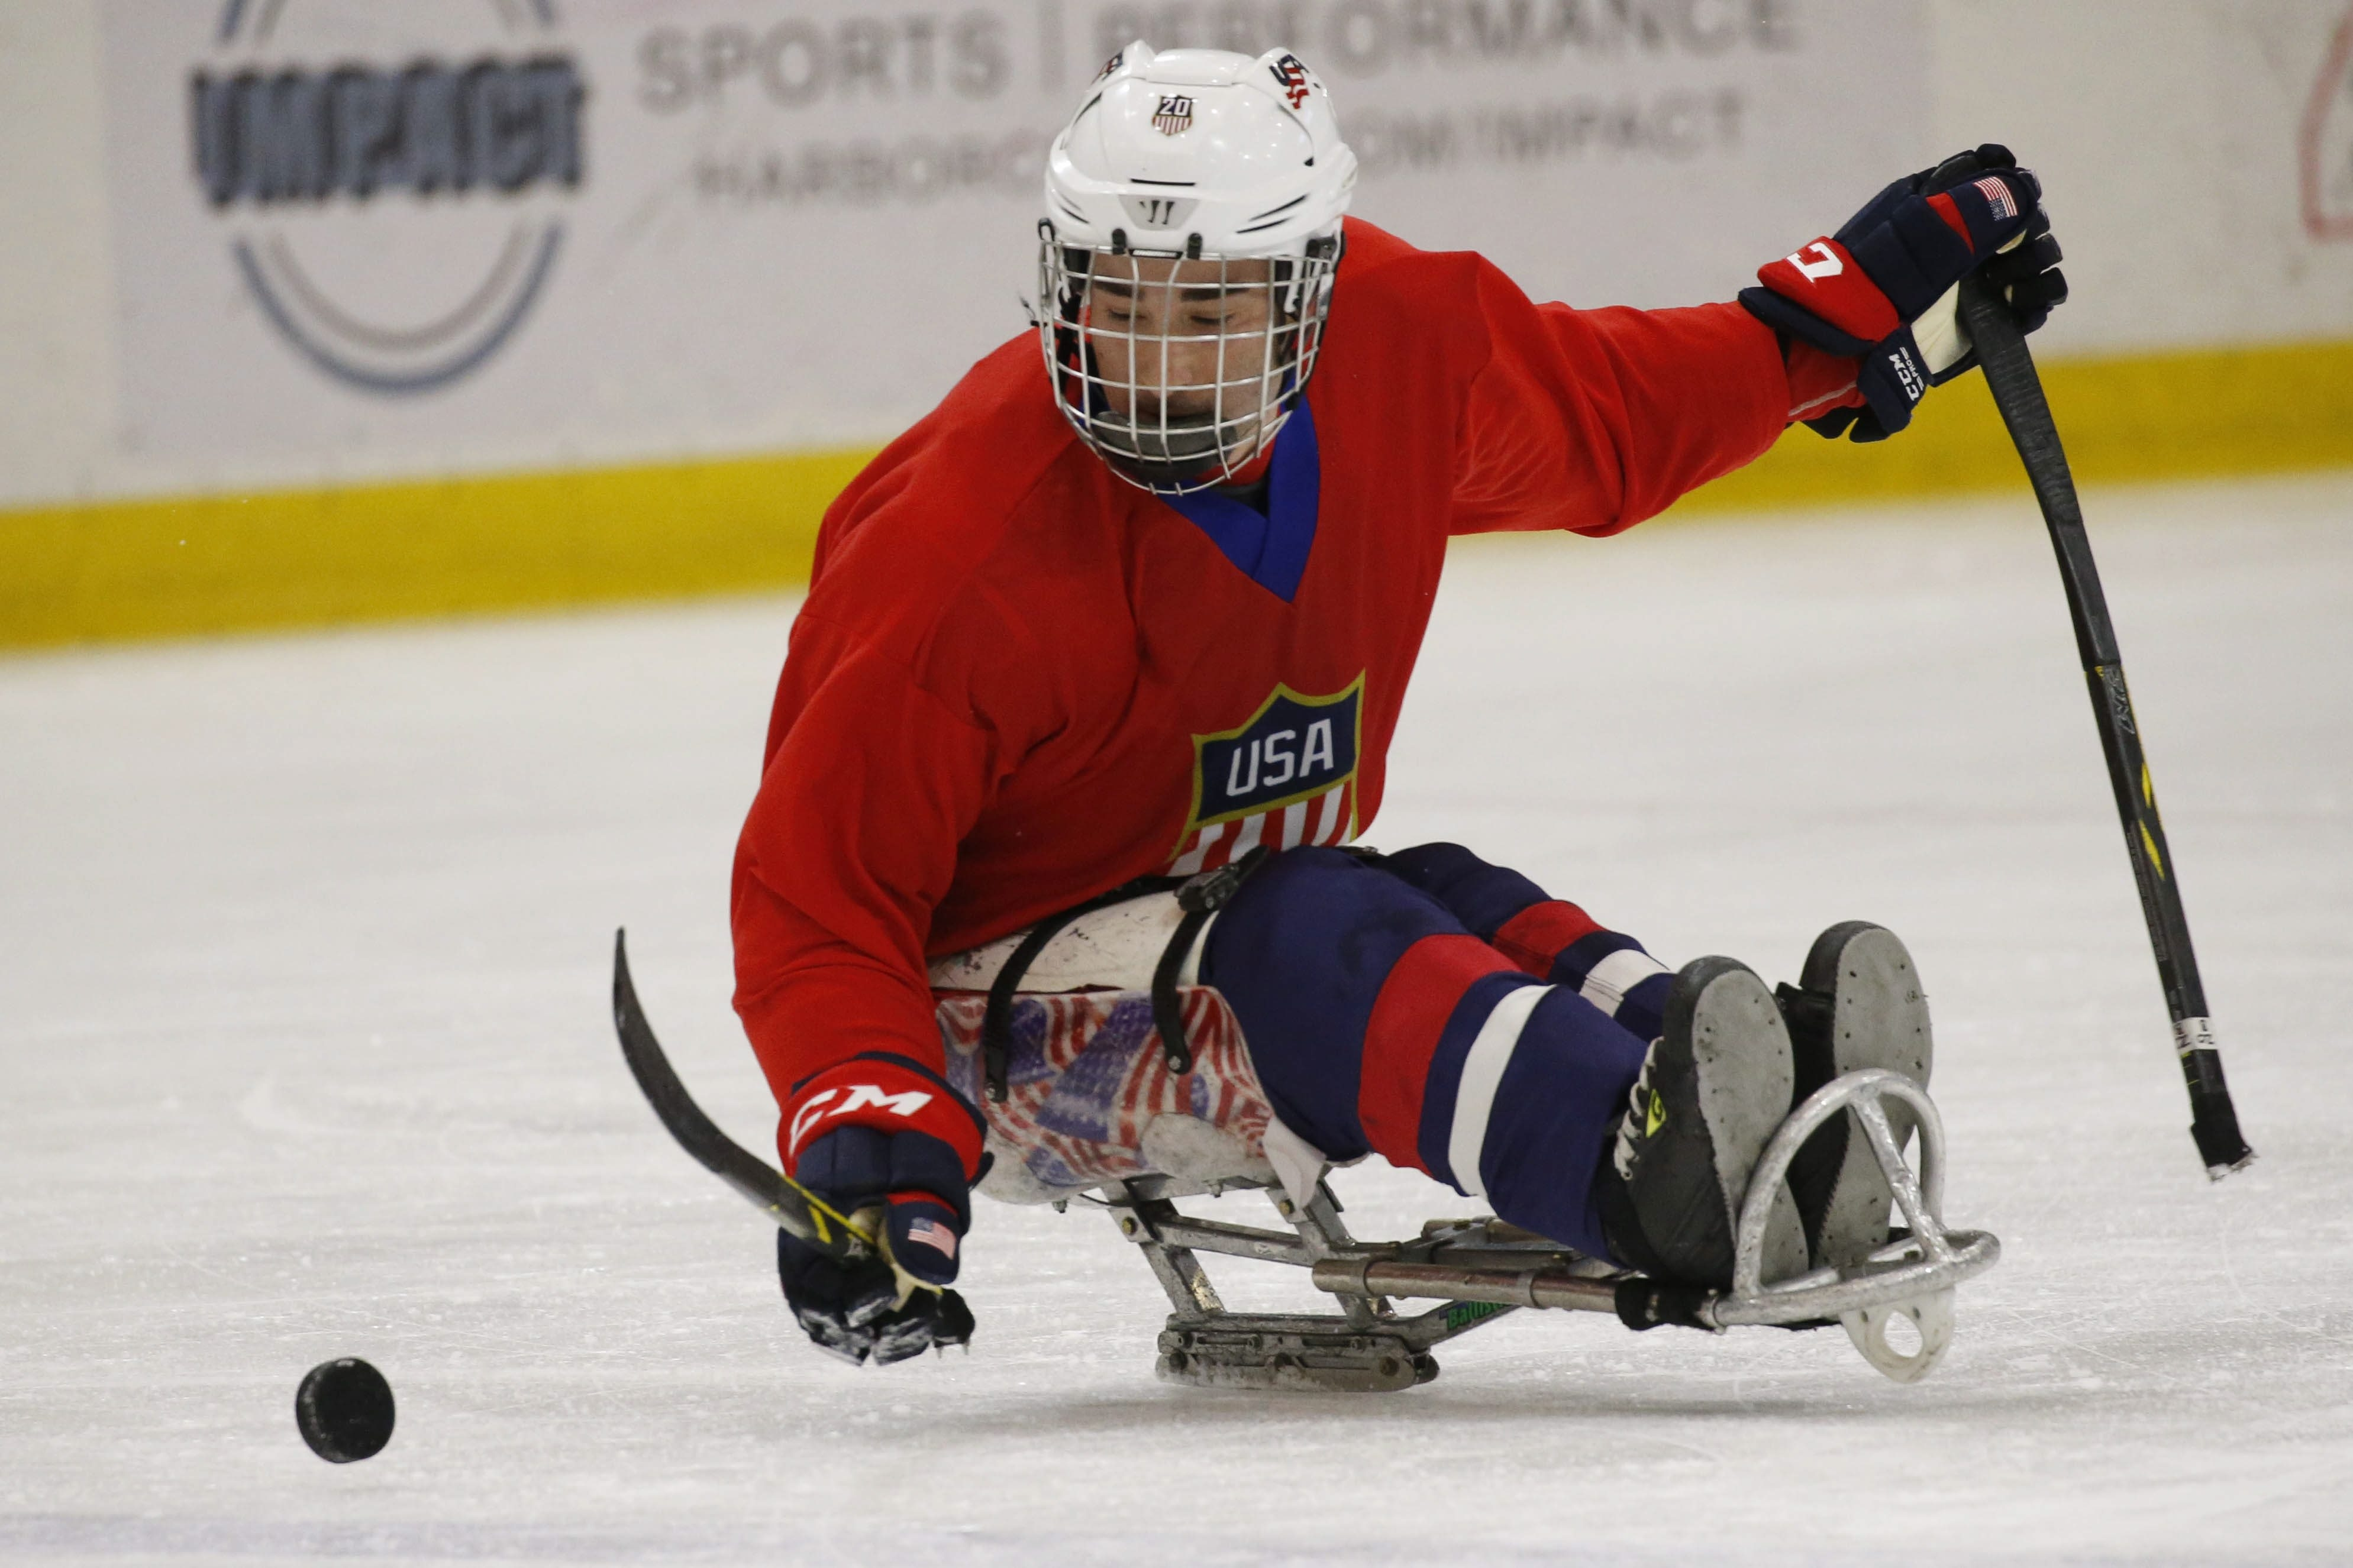 Adam Page moves the puck during Team USA practice at HarborCenter on Monday.